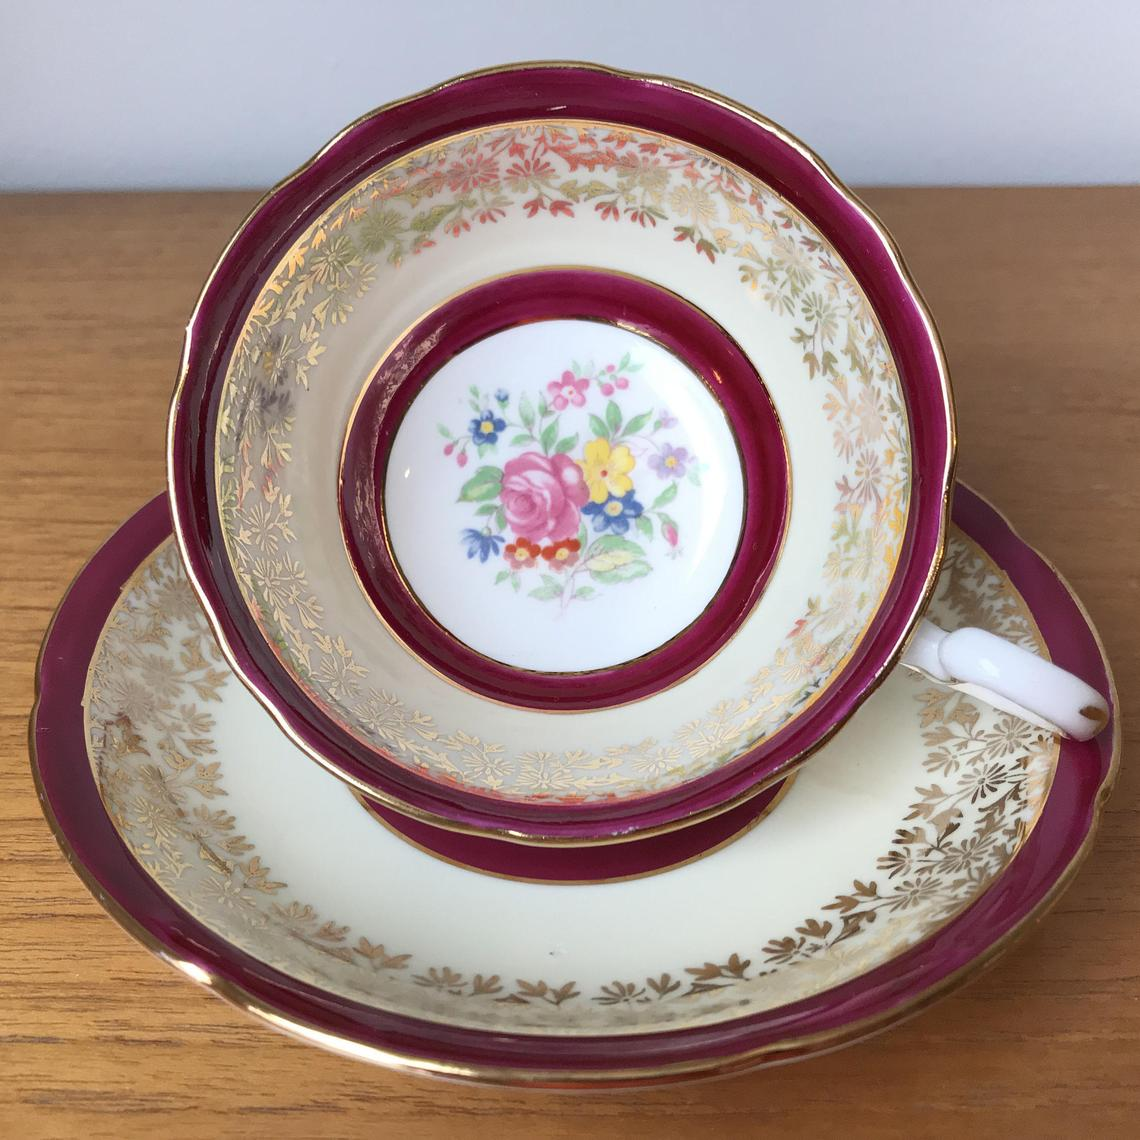 Royal Grafton Vintage Teacup and Saucer, Raspberry Dark Pink Bands with Gold Floral Overlay Tea Cup and Saucer, Bone China